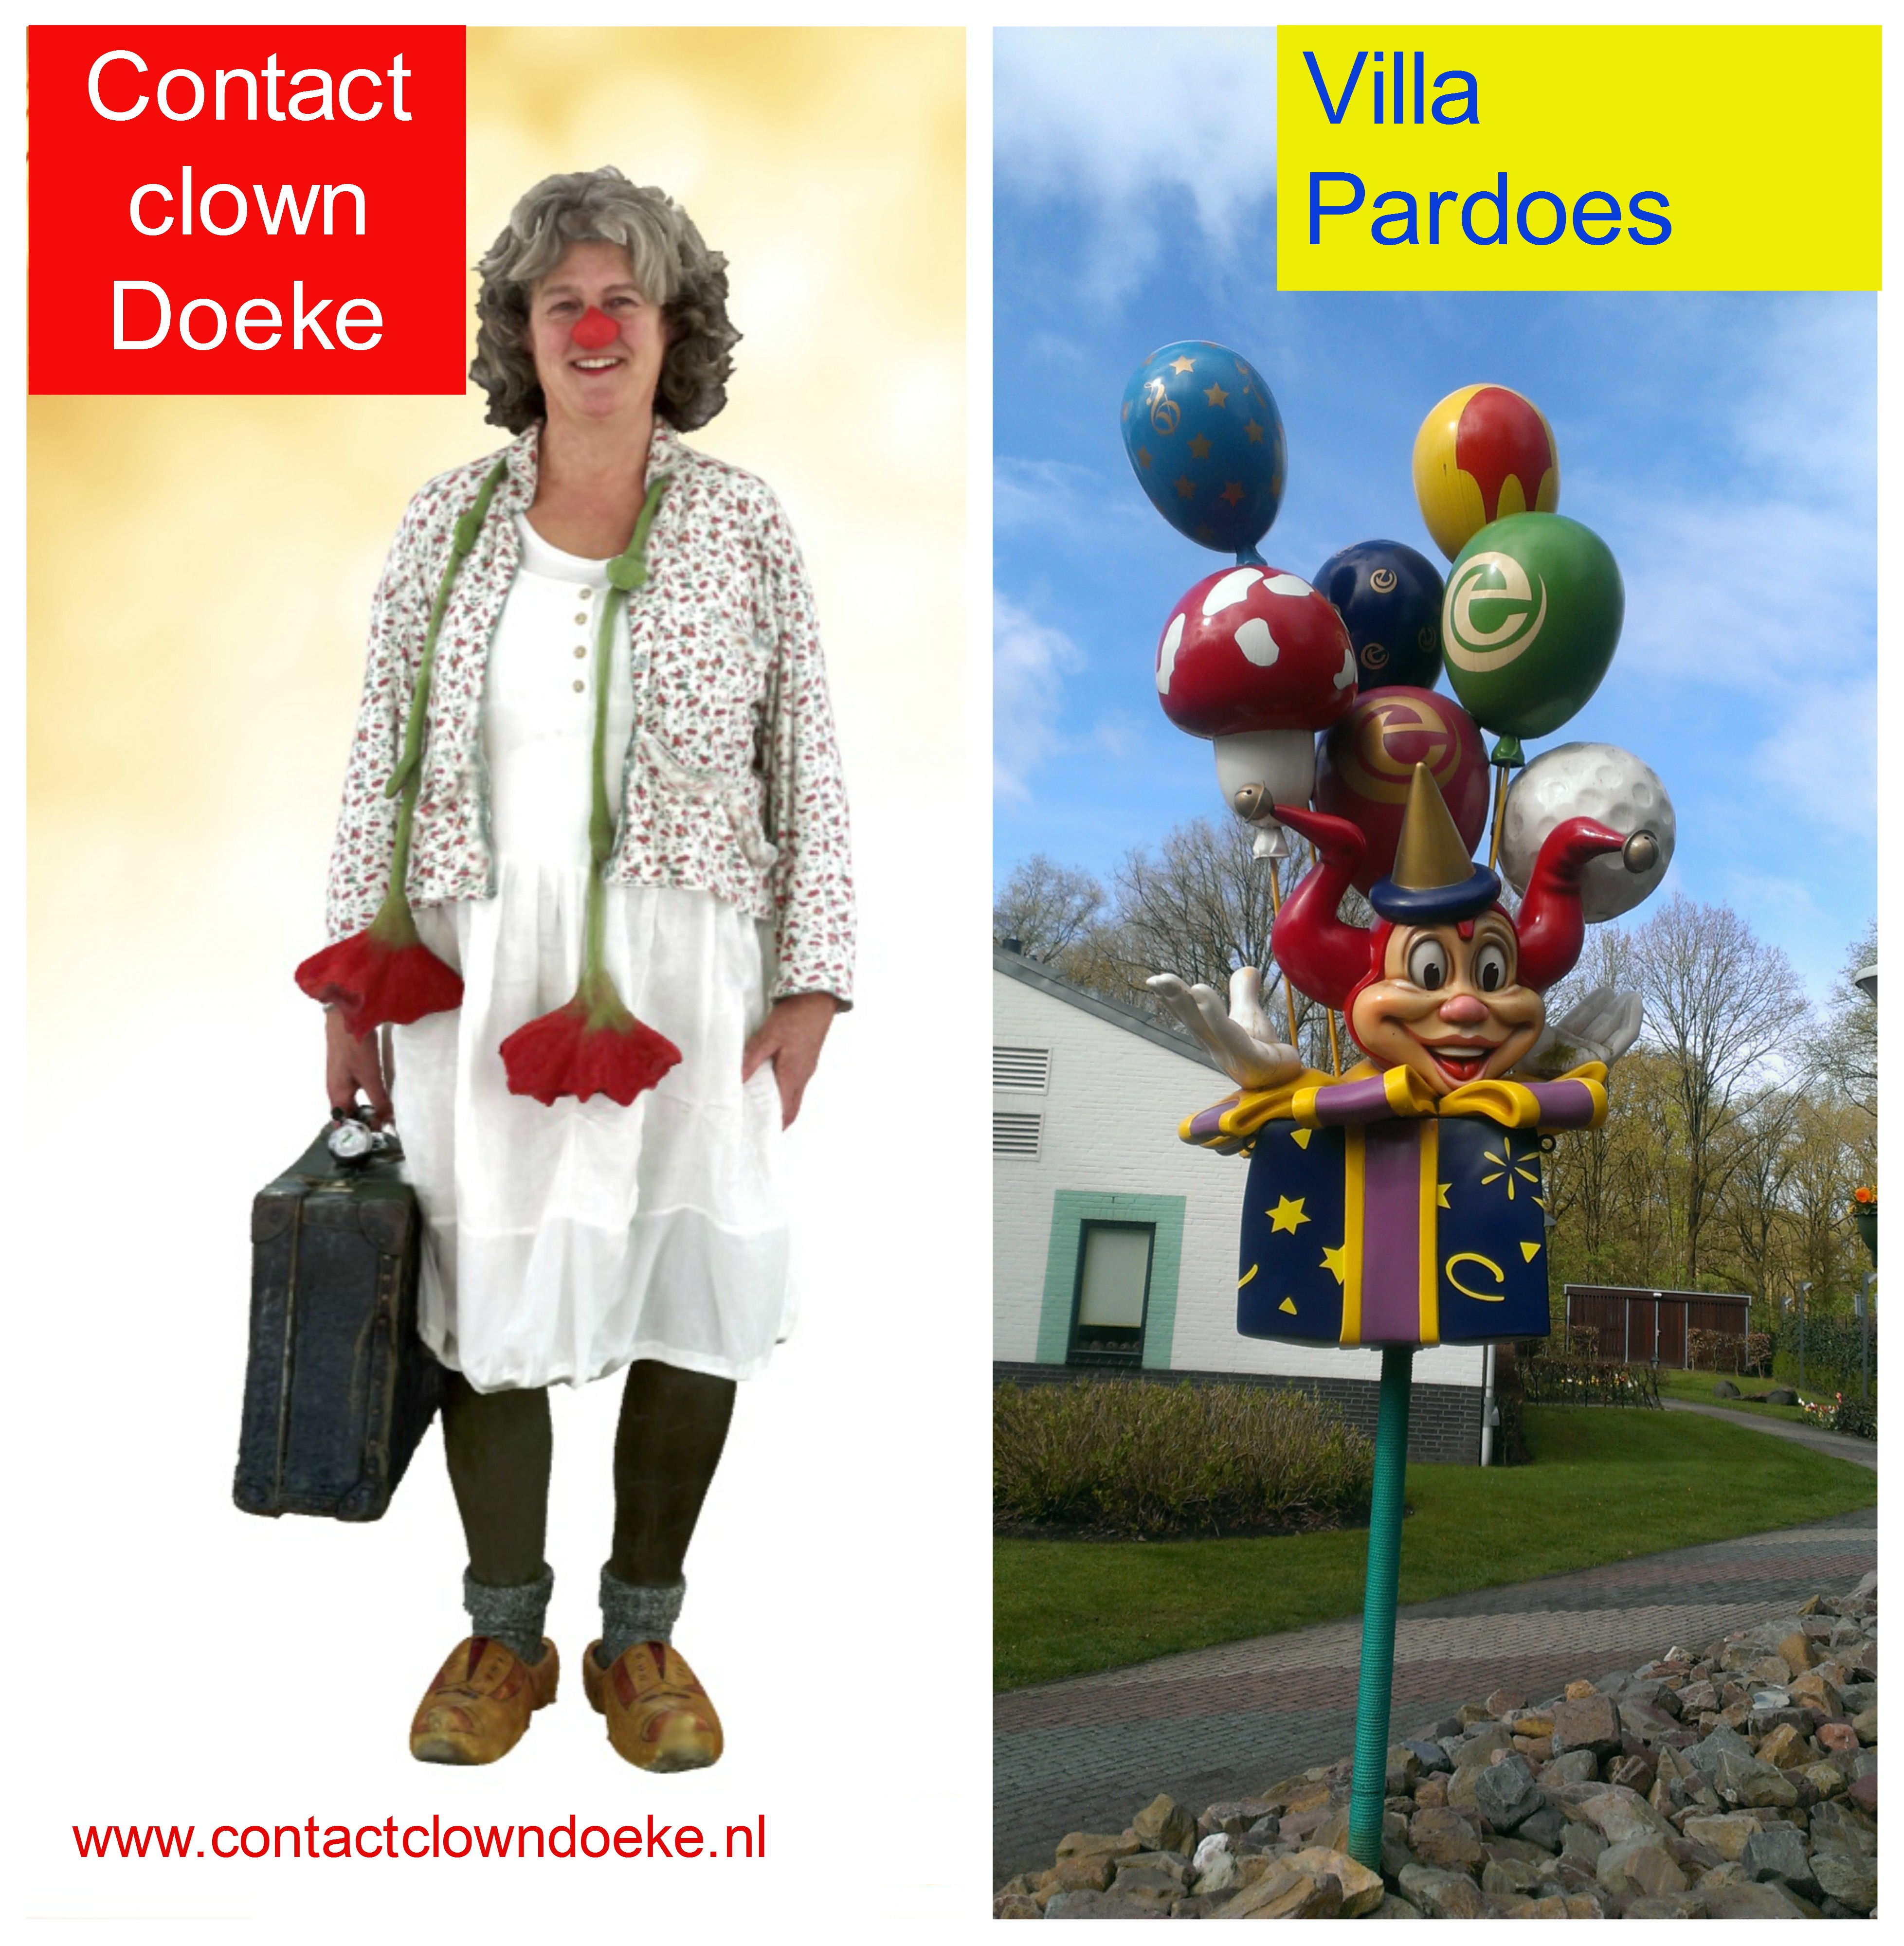 Contactclown Doeke - Clown in de zorg - Villa Pardoes